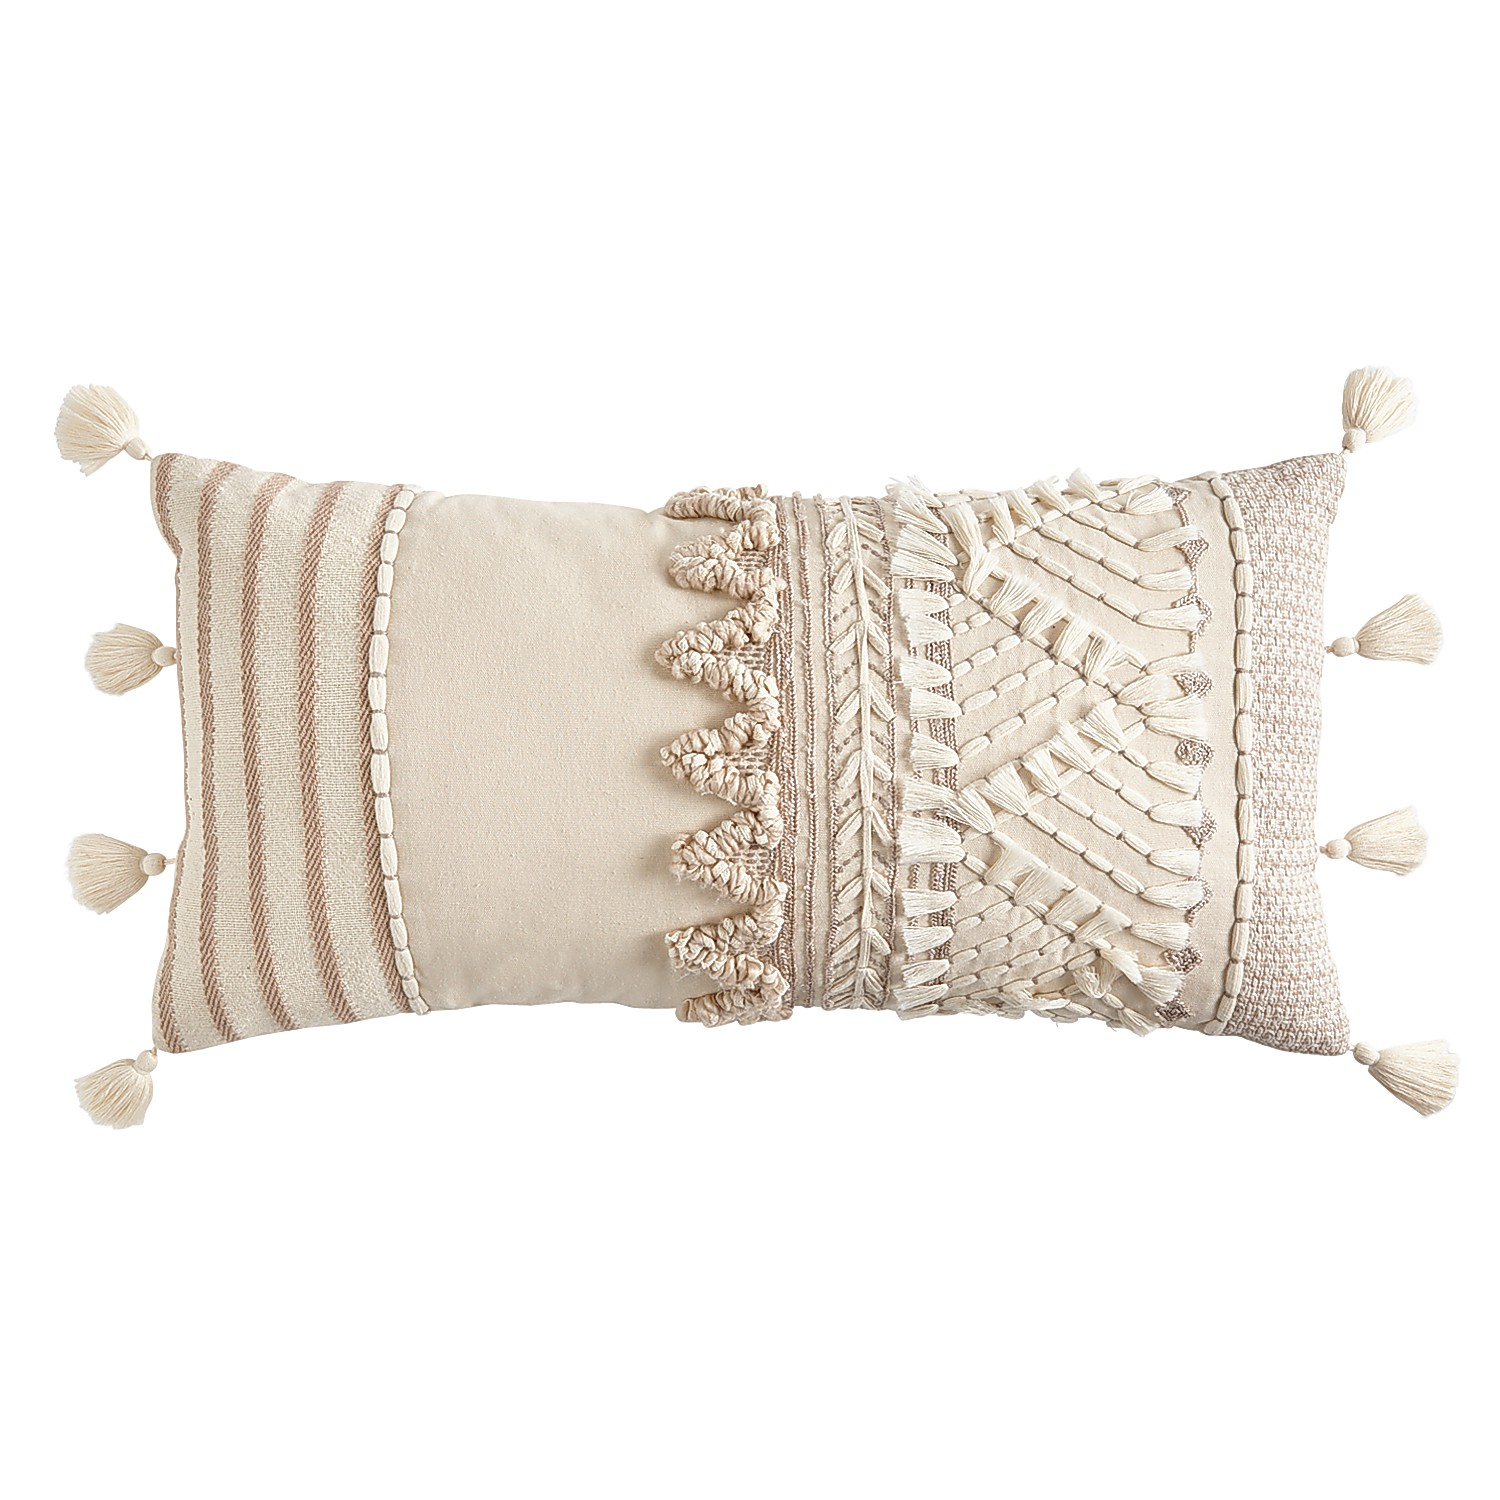 Textured Oversized Neutral Lumbar Pillow with Tassels